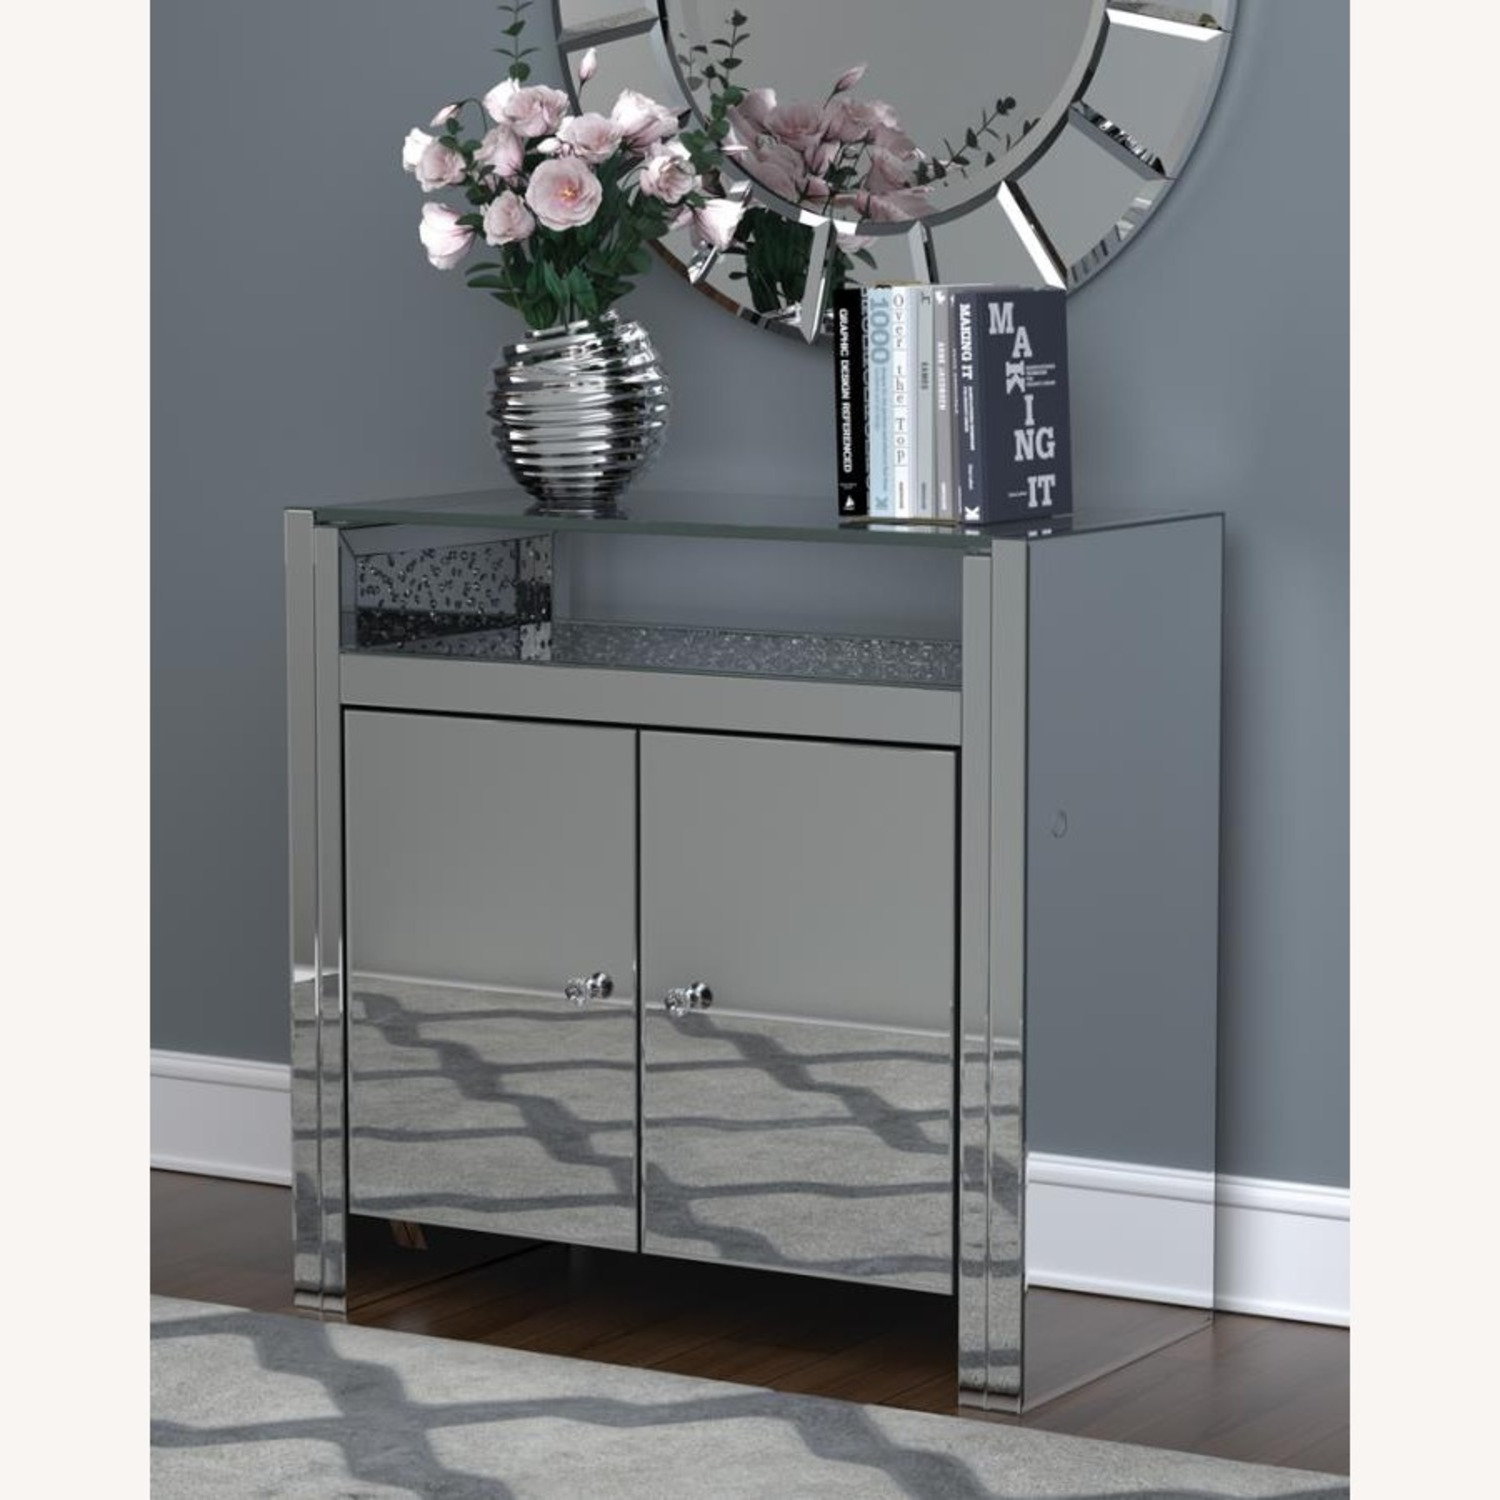 Cabinet In Silver & Clear Mirror Finish - image-6